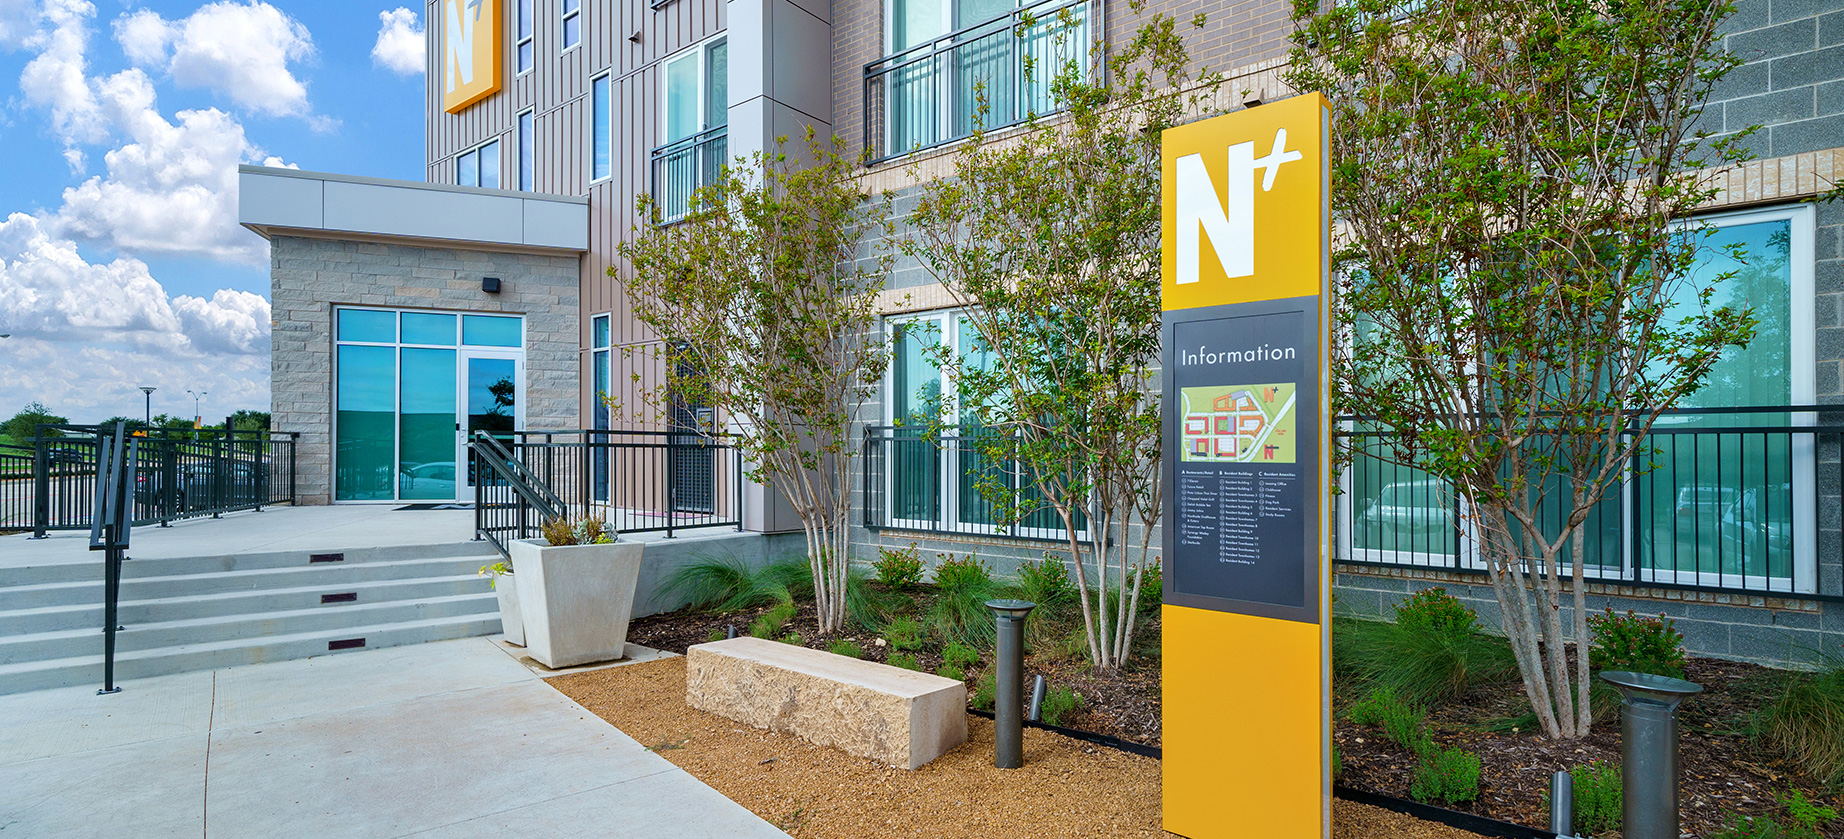 University of Texas at Dallas: Northside Exterior Sign